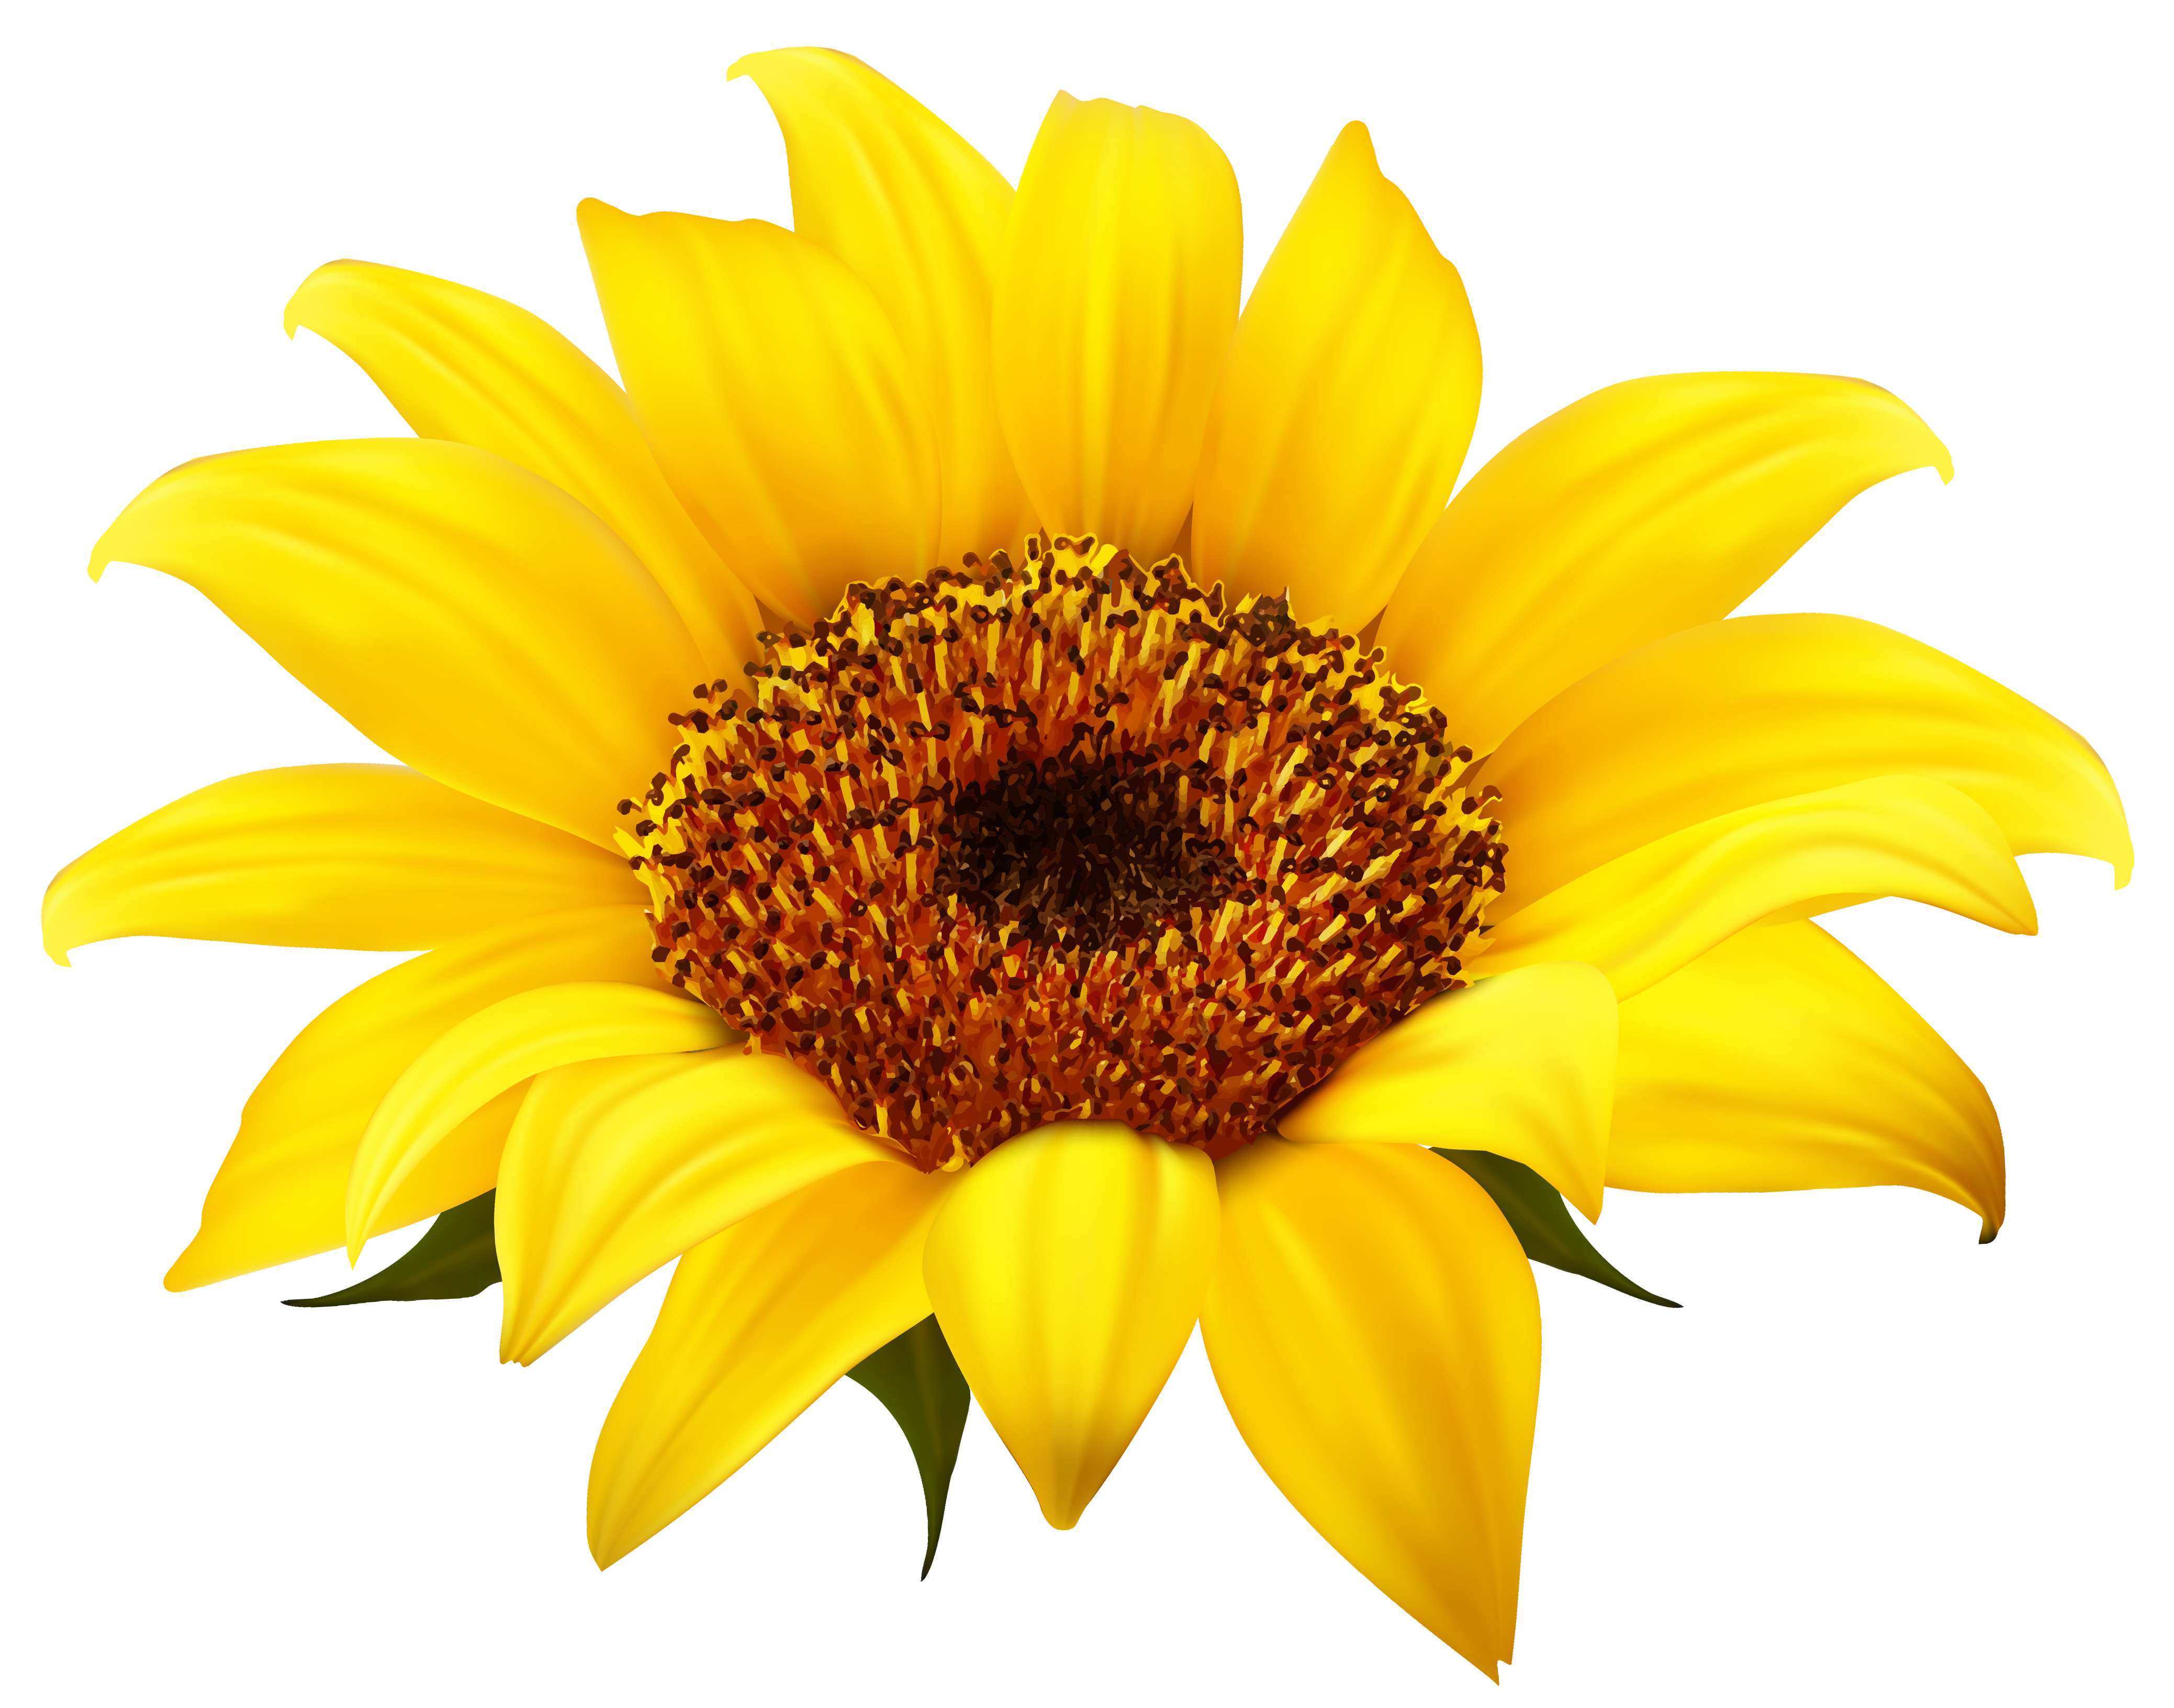 Fall Sunflower Png - Sunflower Clipart PNG Image | Gallery Yopriceville - High-Quality ...